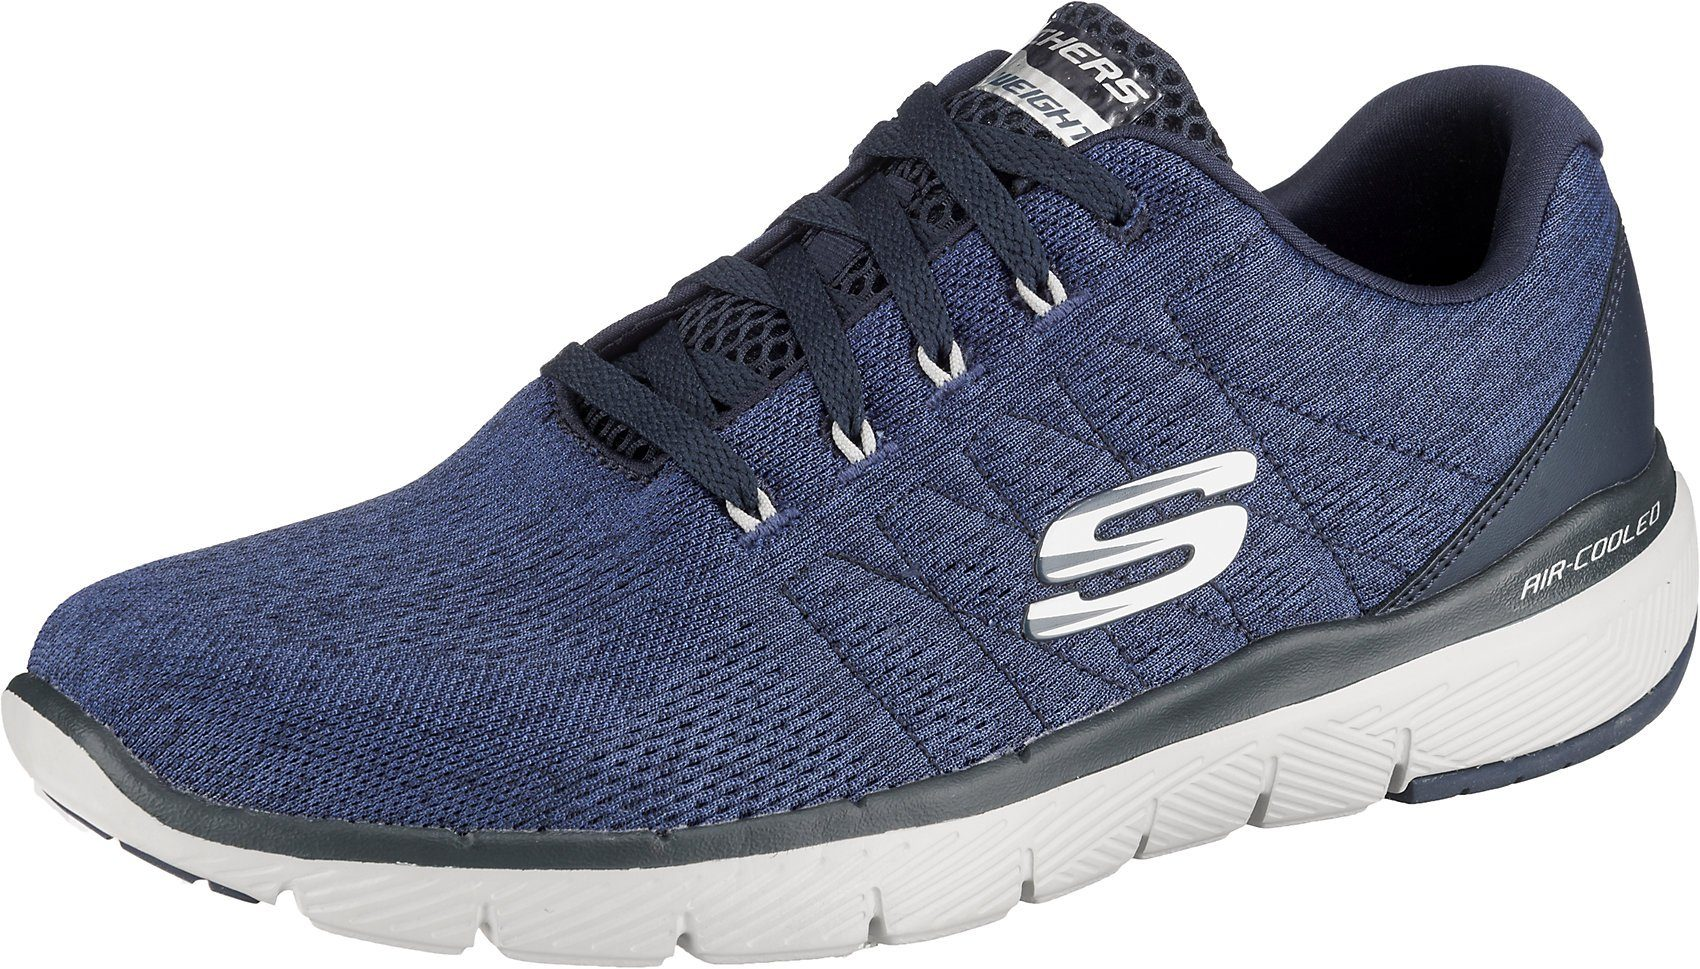 Skechers »Flex Advantage 3.0 Stally Sneakers Low« Sneaker online kaufen | OTTO